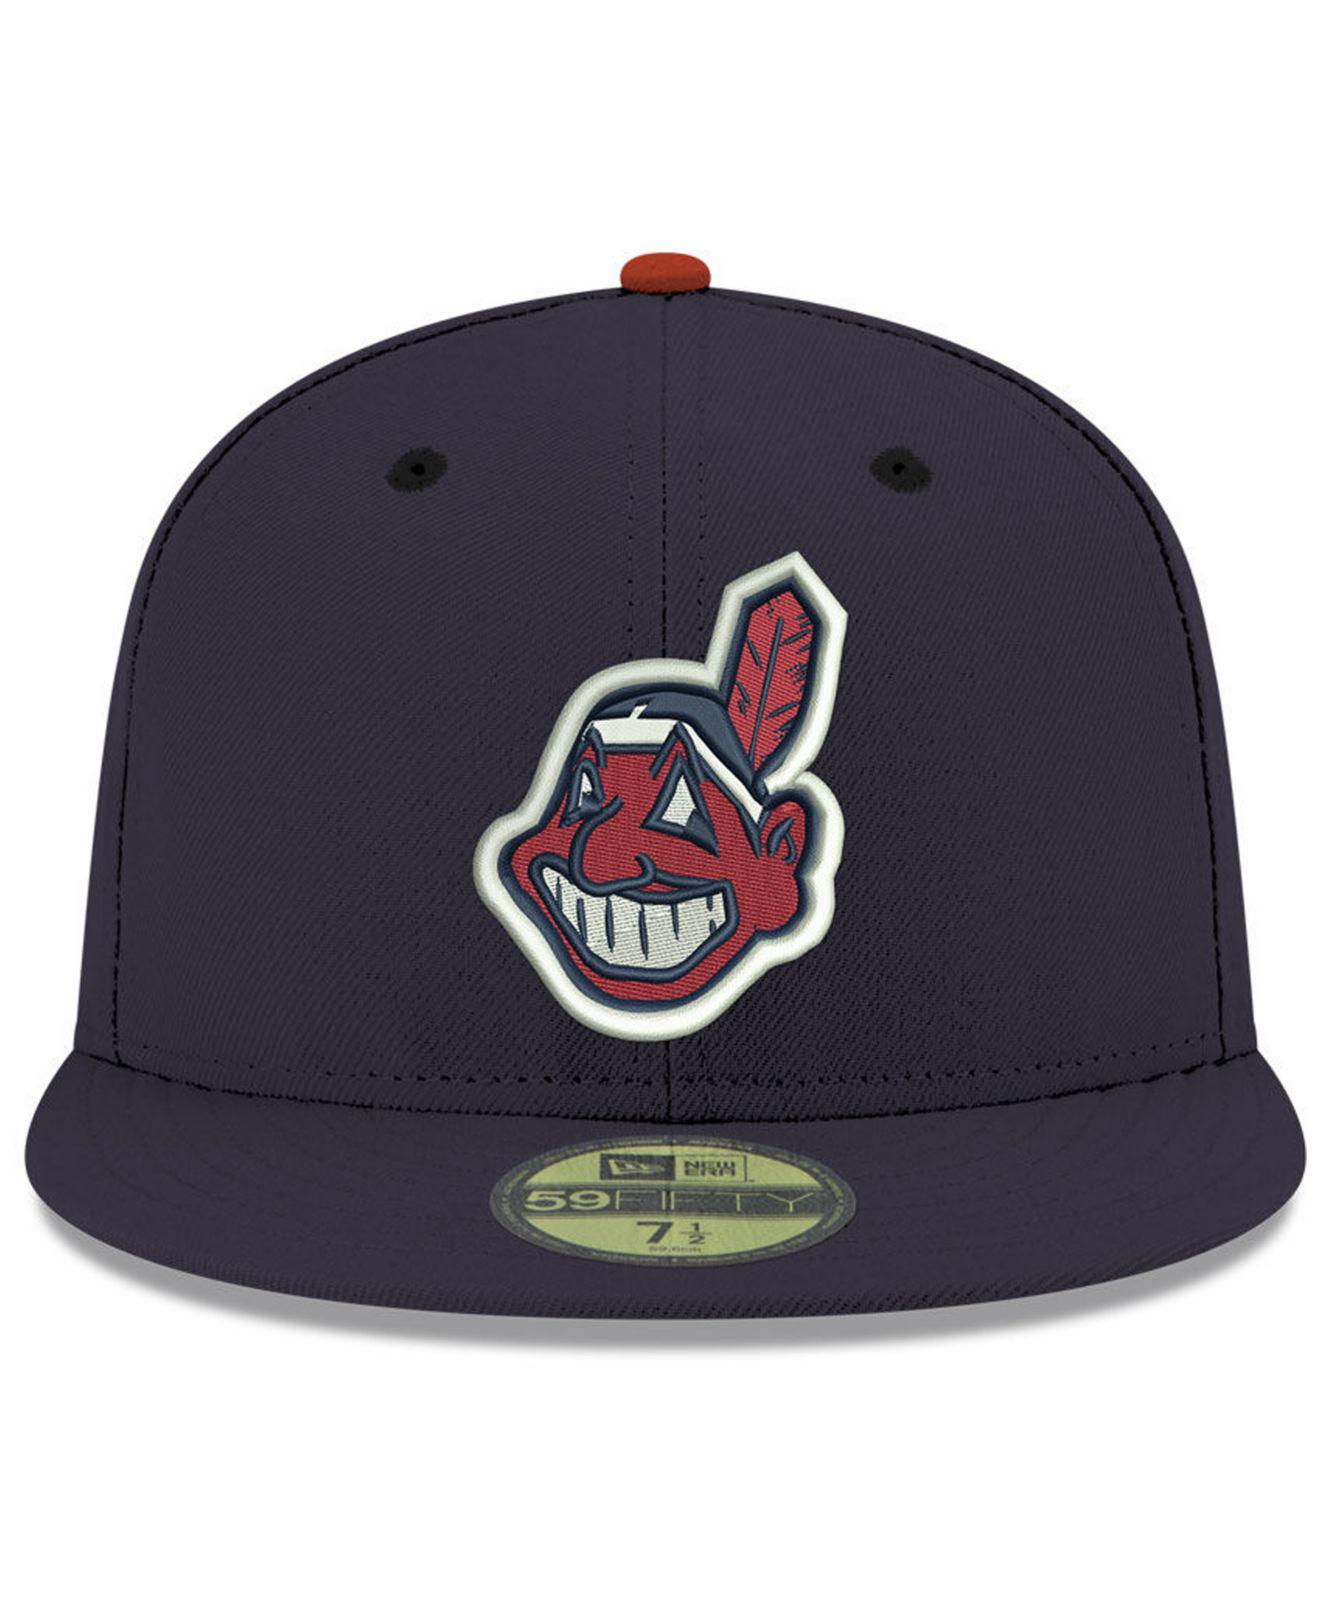 db83a4b9916595 ... best ktz. mens blue cleveland indians retro classic 59fifty fitted cap  41515 2e044